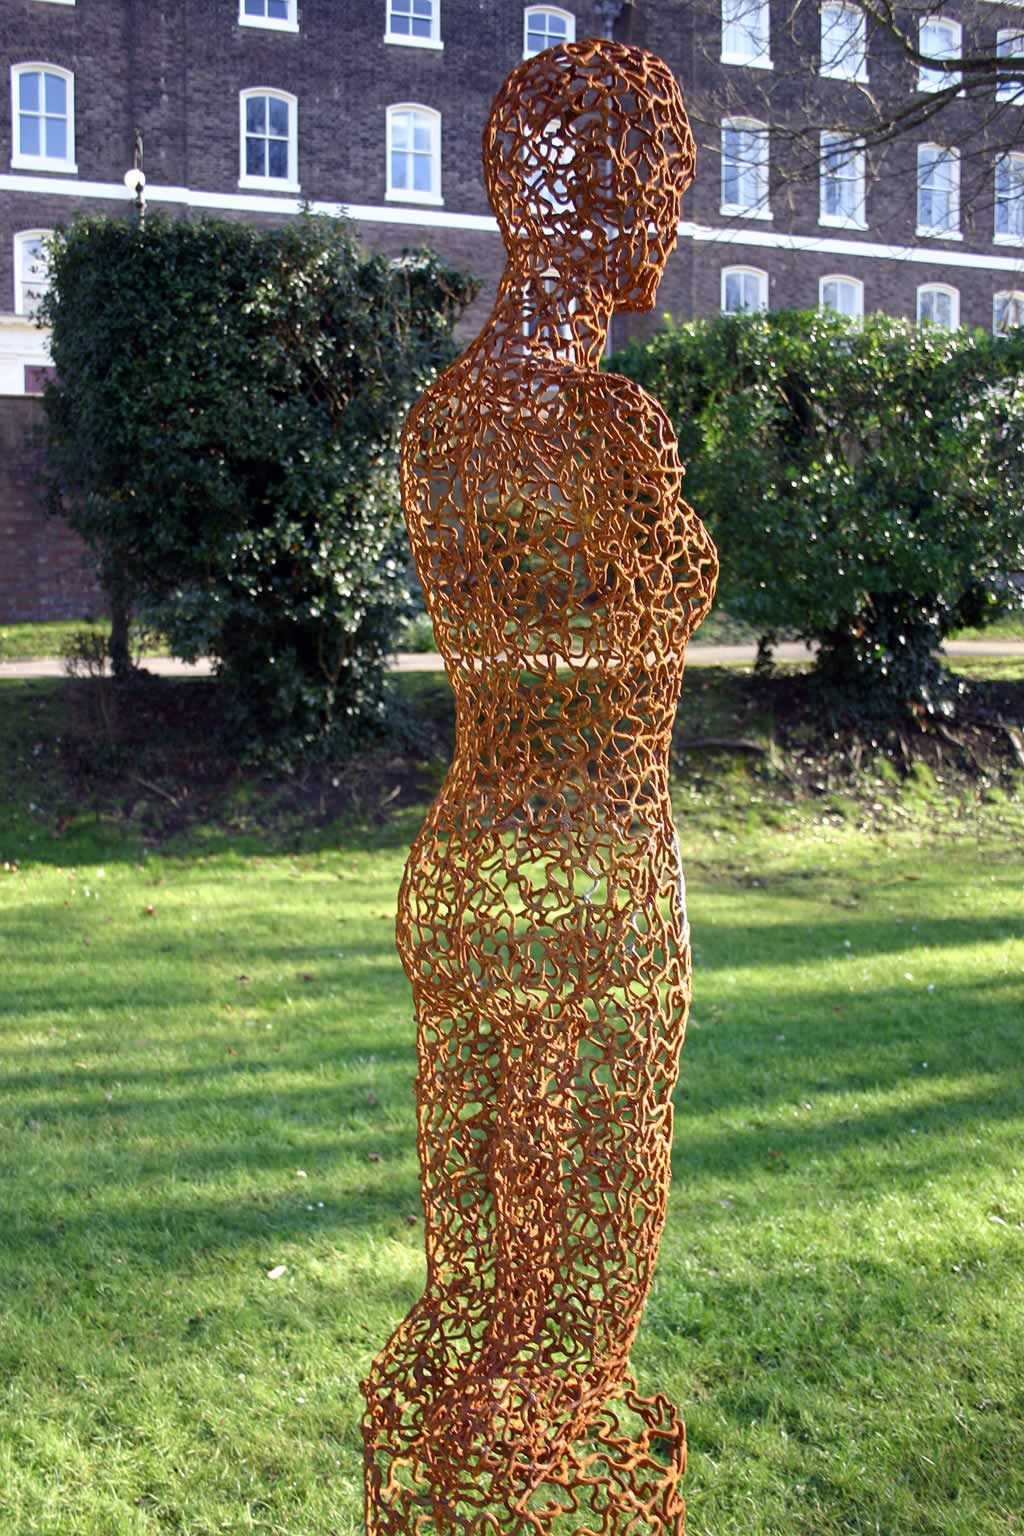 Jane (abstract figurative sculpture) by sculptor Ian Campbell-Briggs